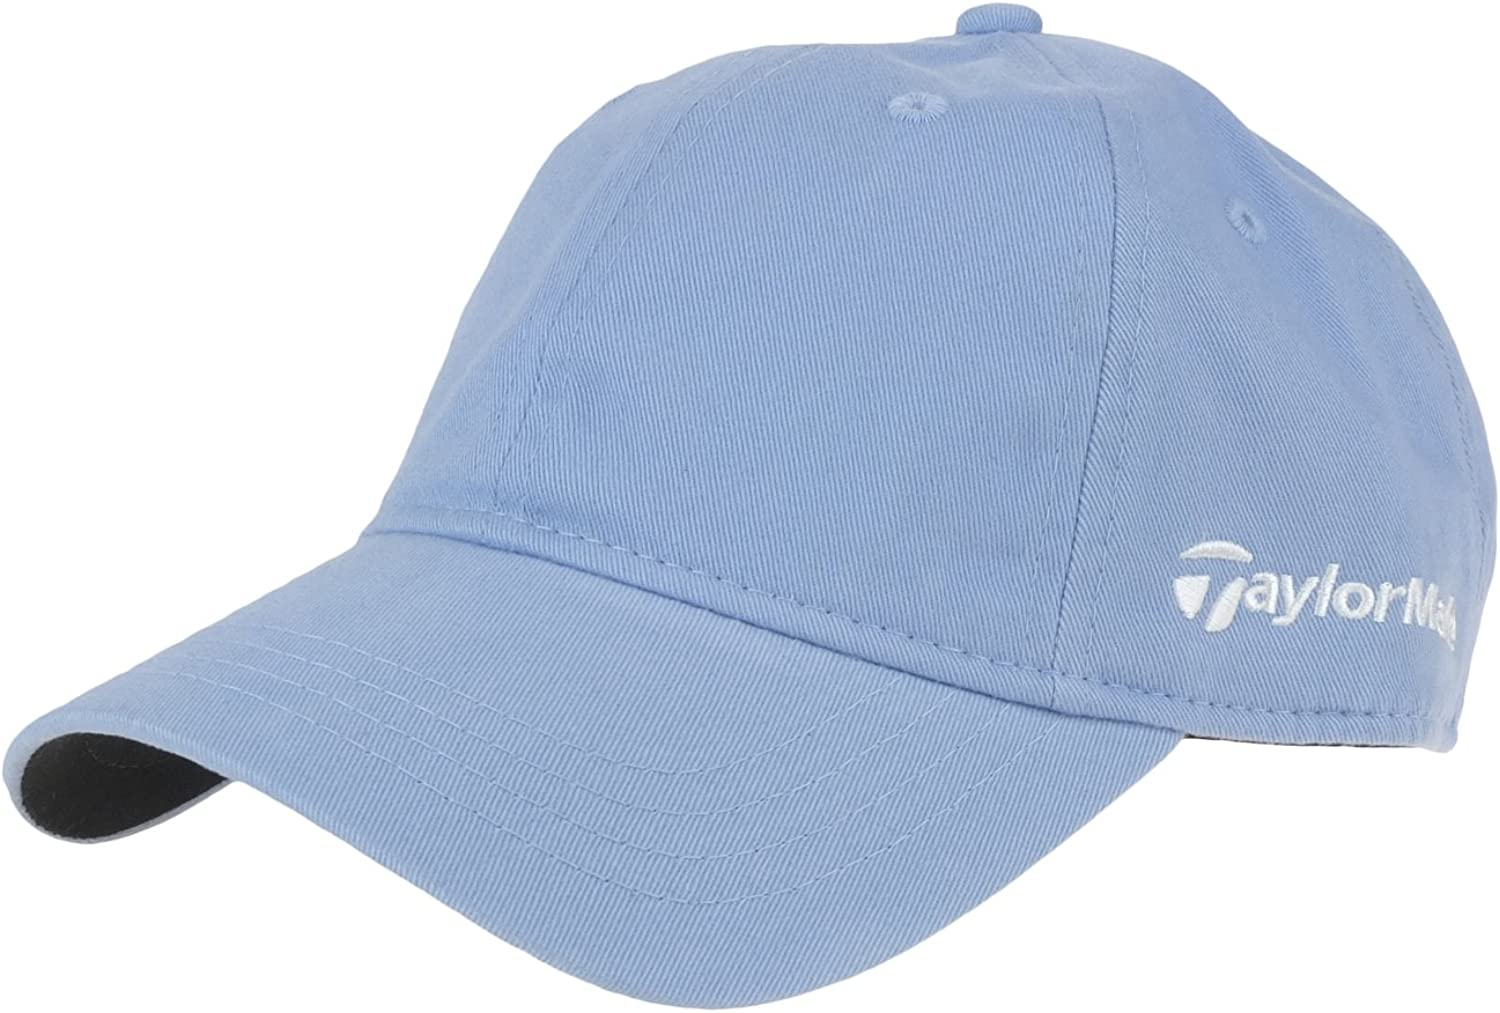 TaylorMade Womens Front Max 48% OFF Hit 100% Relaxed 2021 model Twill Cotton Cap